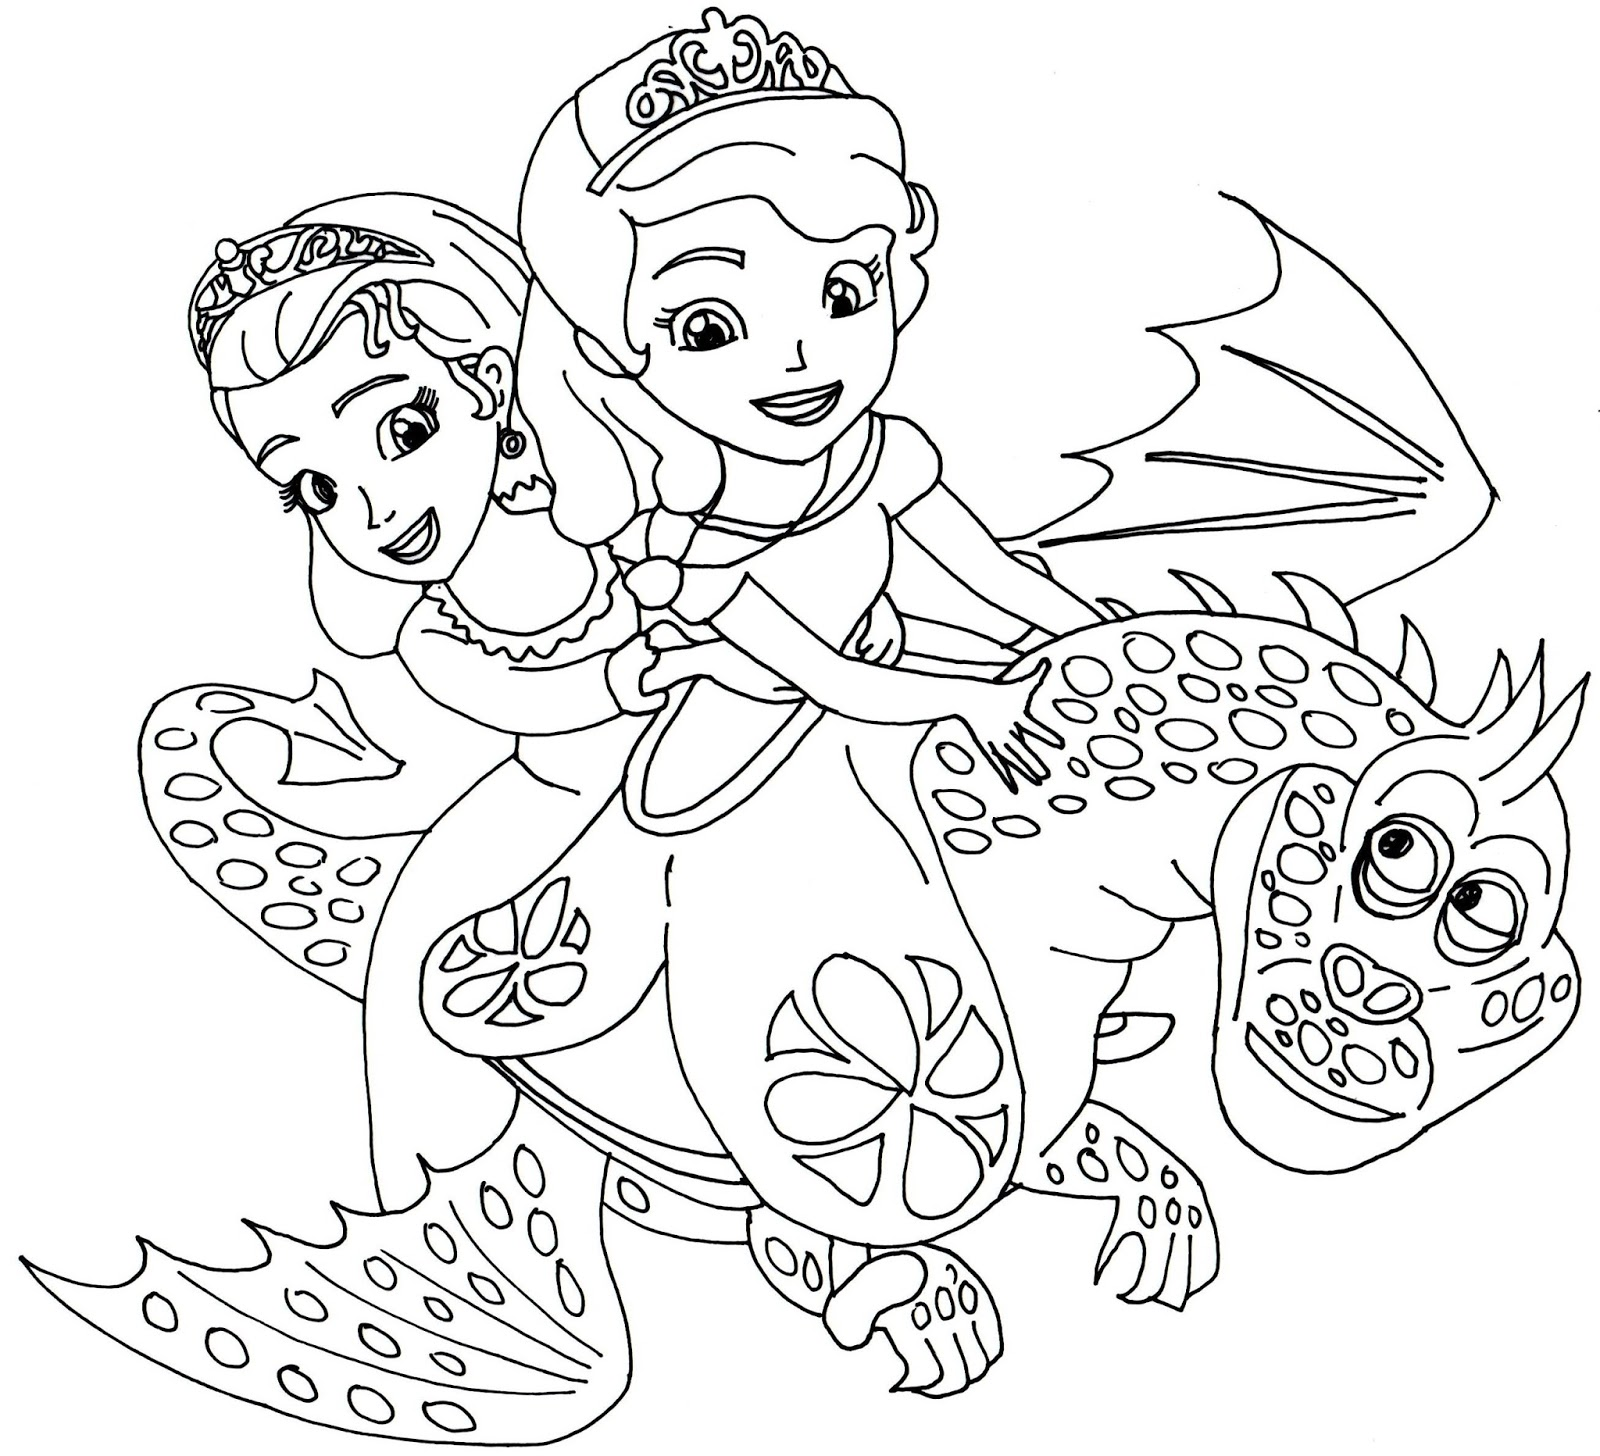 Sofia The First Coloring Pages: December 2015 | princess sofia coloring pages